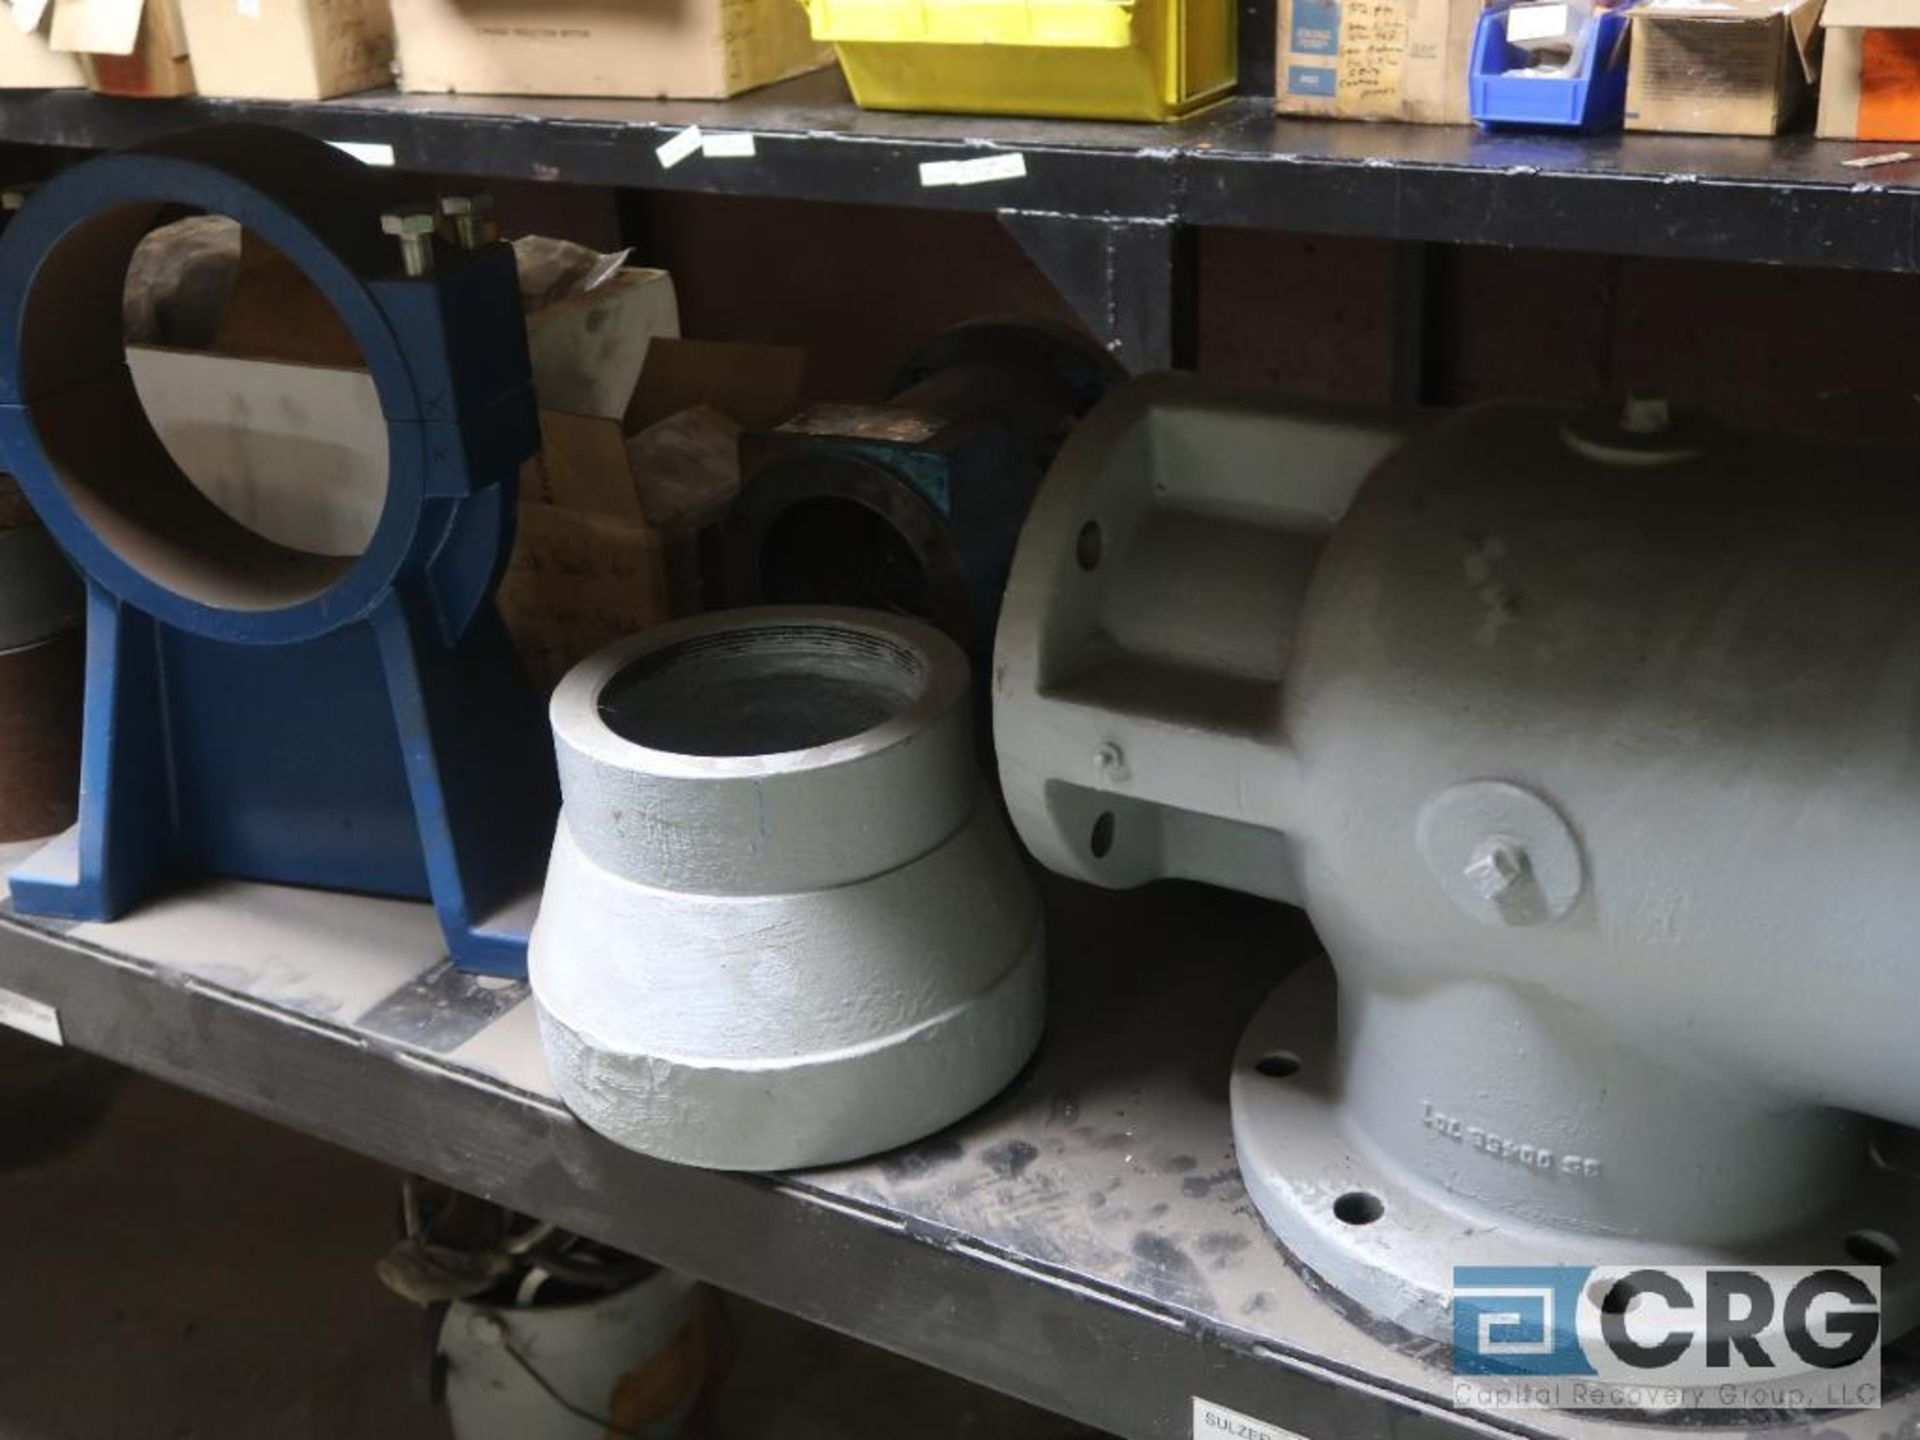 Lot of assorted parts on (4) sections and on wood shelving including motor, guards, housing, pump - Image 5 of 20